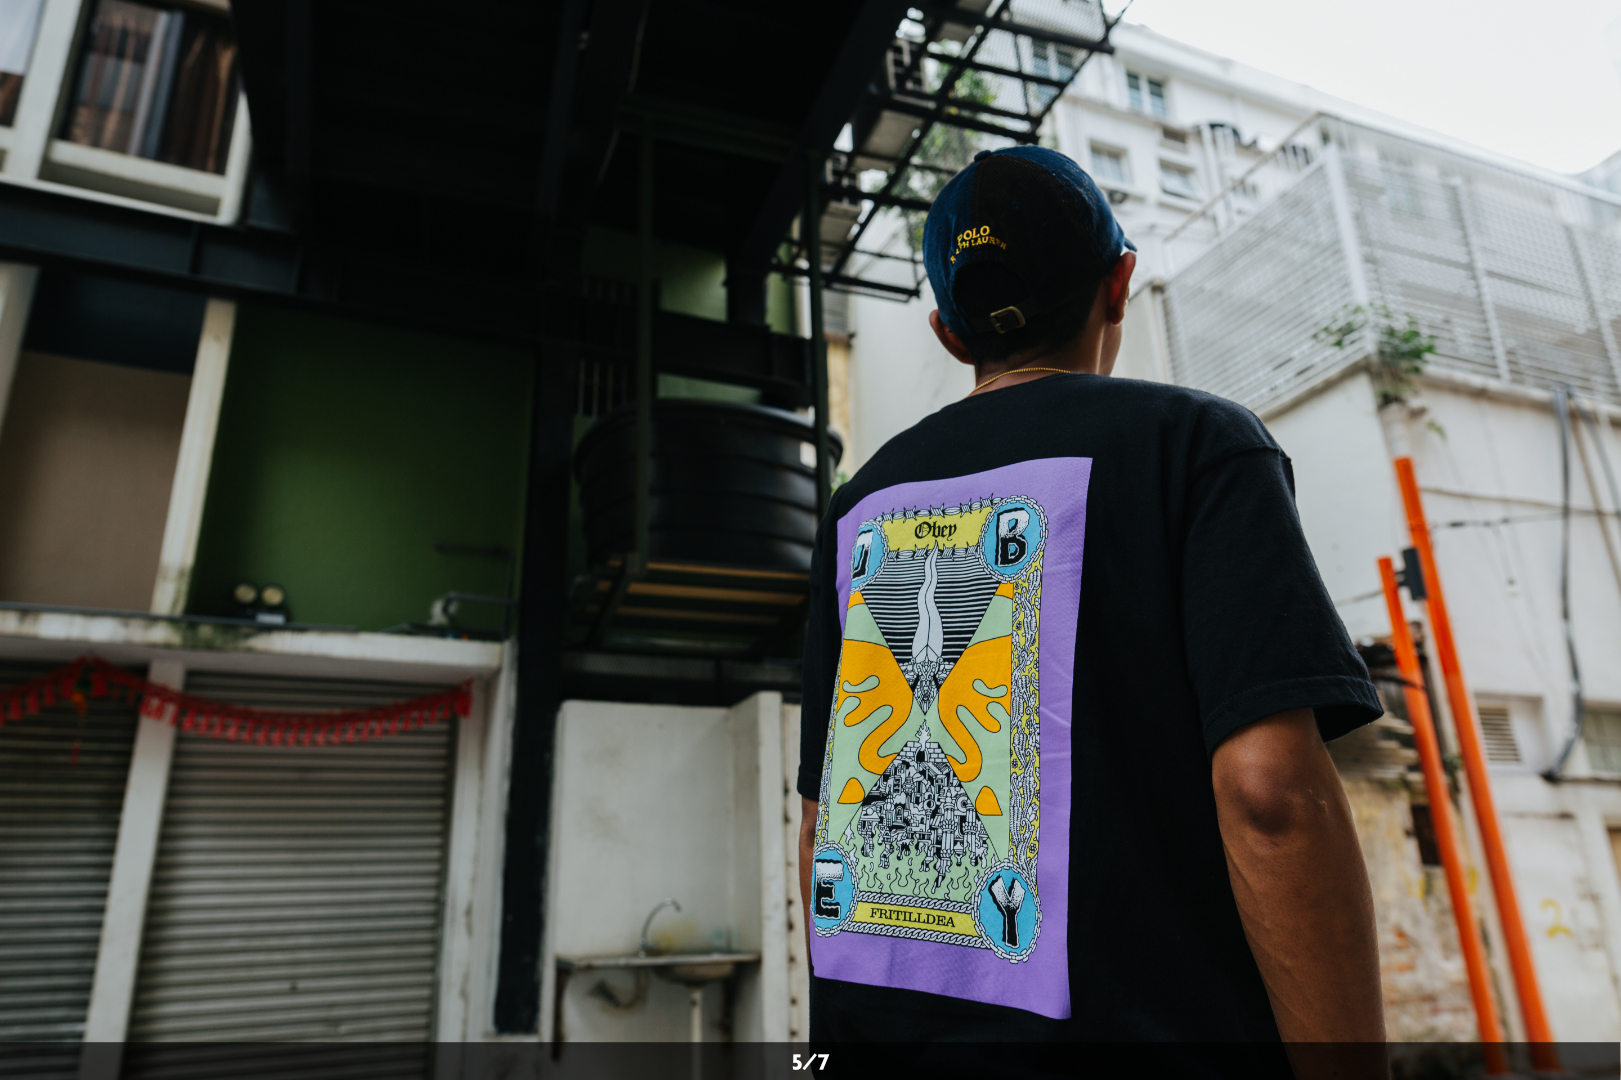 FriTillDea sports an OBEY Clothing x FriTillDea t-shirt; he's the first Malaysian artist to have collaborated with the streetwear giant.